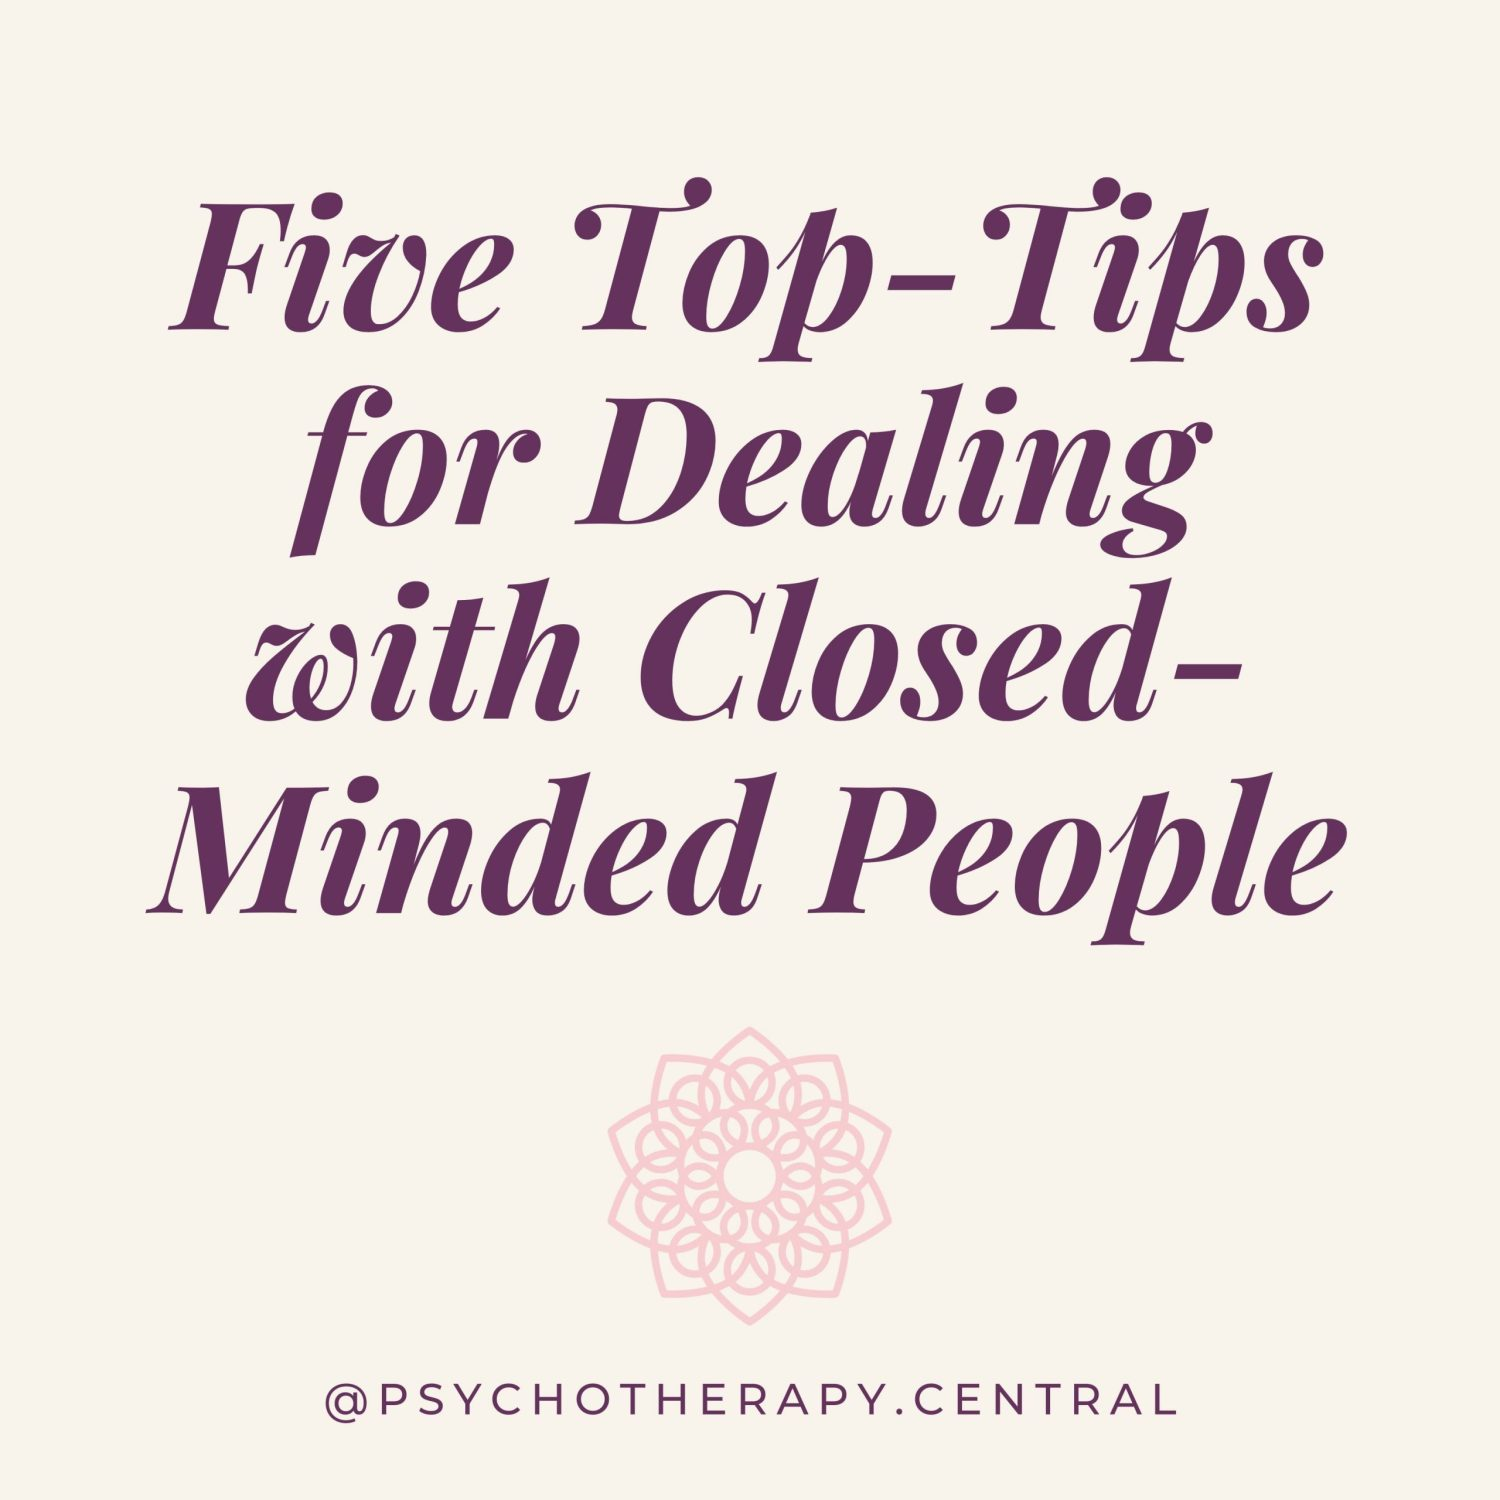 top tips for dealing with closed-minded people